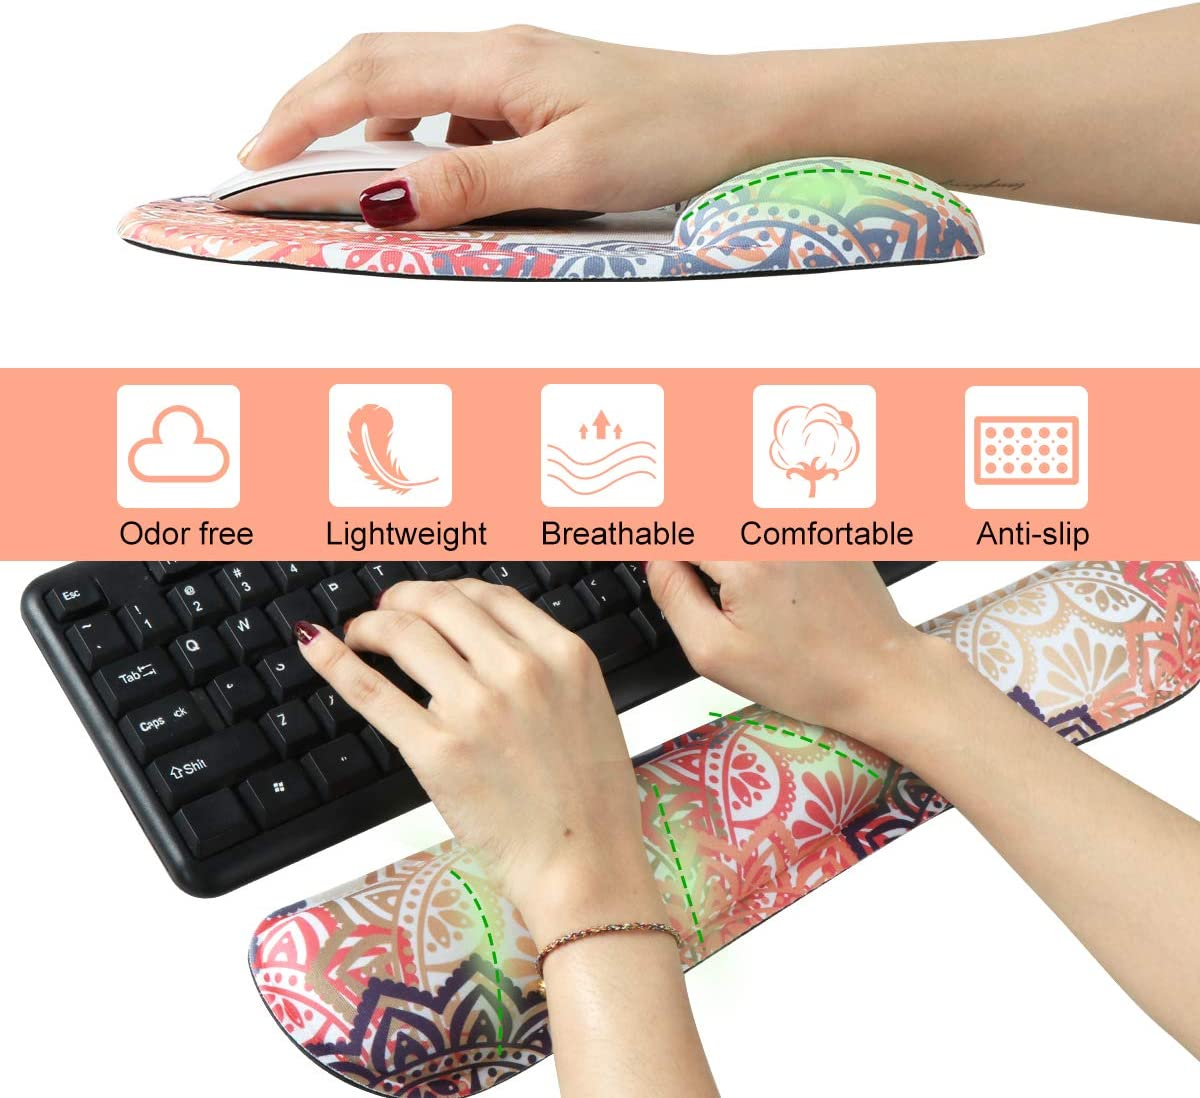 Paper Cutting Anyshock Keyboard Wrist Rest Set and Ergonomic Mouse Pad with Wrist Support Memory Foam Filled Non Slip Durable Comfortable Lightweight Wrist Pad for Easy Typing /& Pain Relief